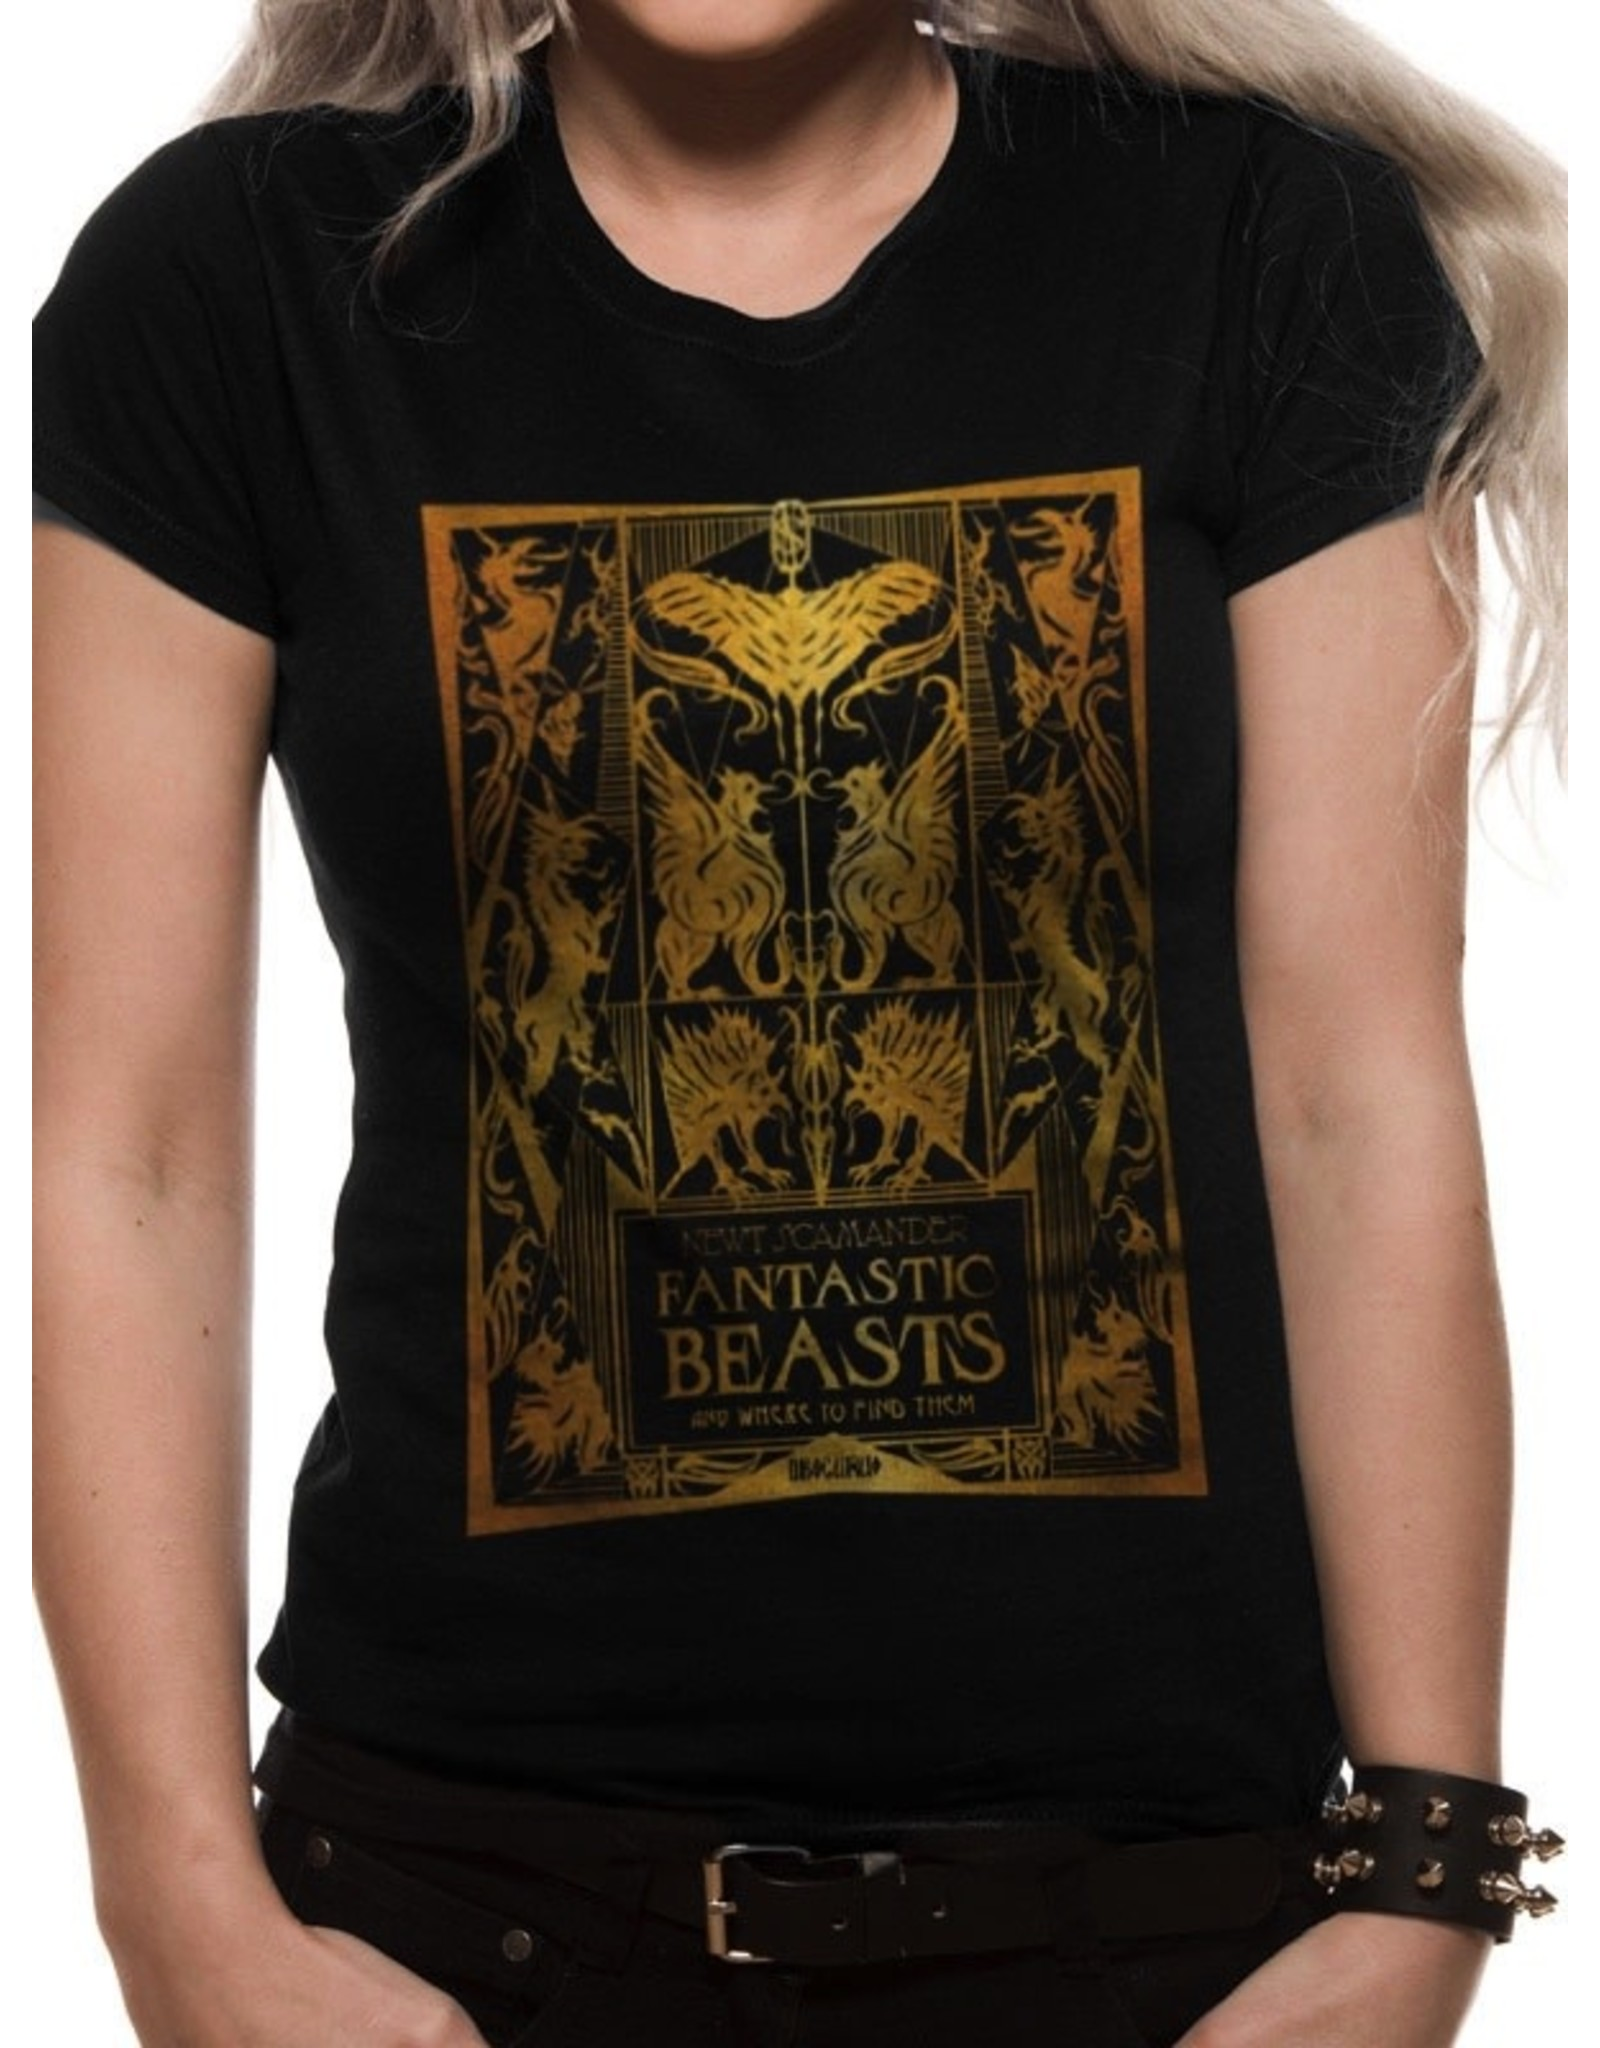 FANTASTIC BEASTS 2 - T-Shirt IN A TUBE - Foil Book Cover - GIRL (XL)